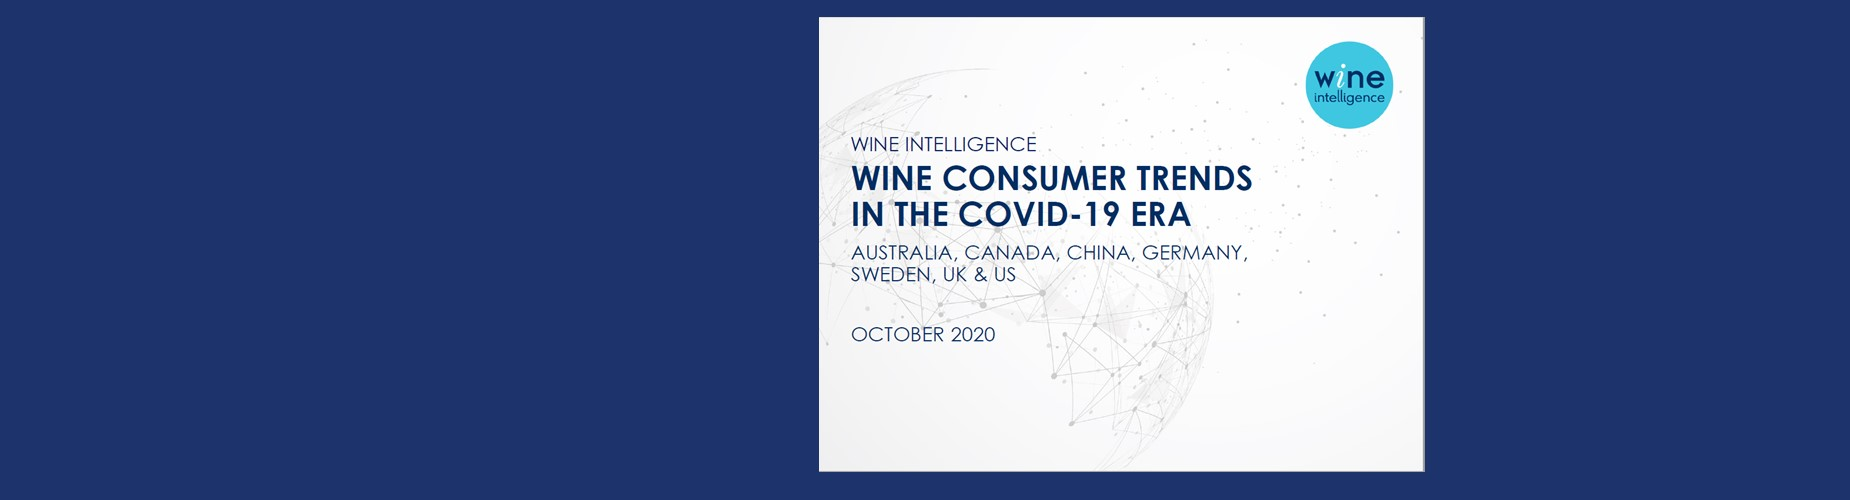 Wine Consumer Trends in the Covid 19 era - About reports shop